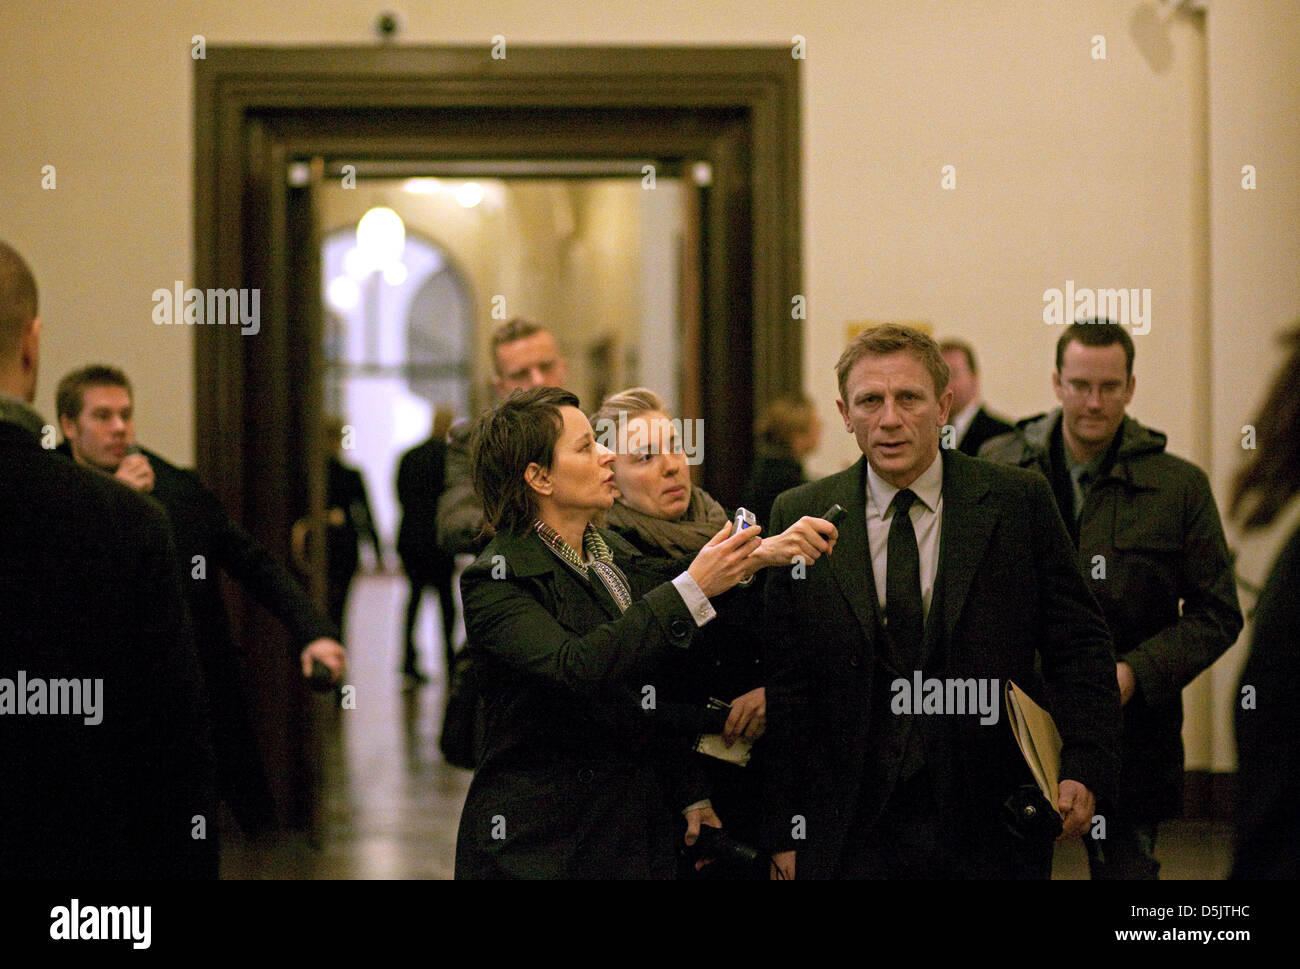 The Girl With The Dragon Tattoo Movie Stock Photos & The ...